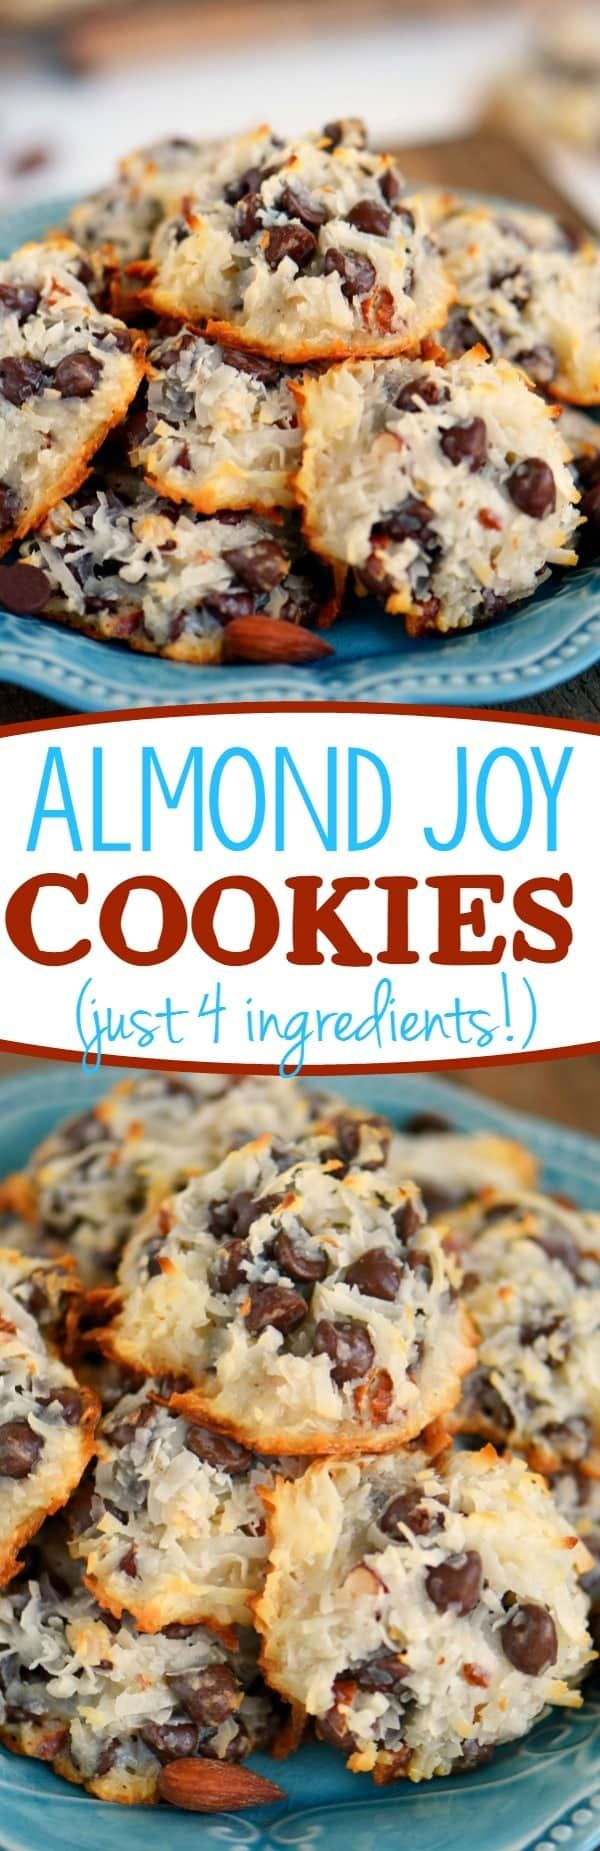 These easy Almond Joy Cookies take just four ingredients and don't even require a mixer! No beating, no chilling, just mix 'em up and throw 'em in the oven EASY! You're going to love these ooey gooey fabulous cookies!